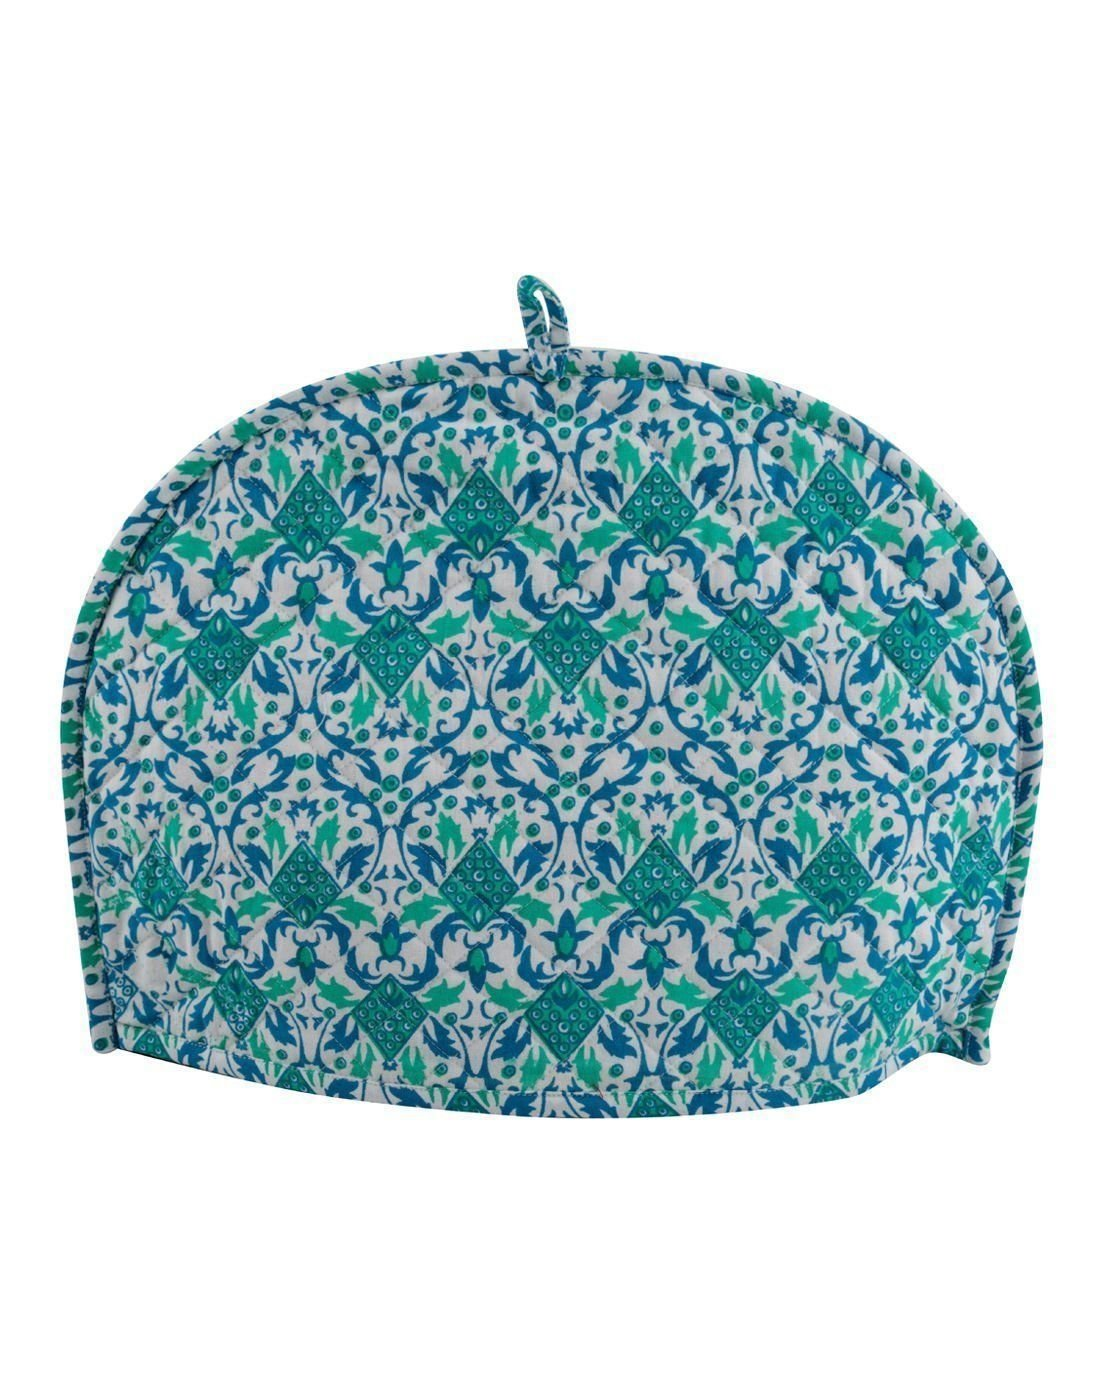 Home Decorative Cotton Creative Tea Cosy Indian Mandala Tea Cozies Tea Pot Cover Dark Blue Print Tea Cozy (Green Ombre)